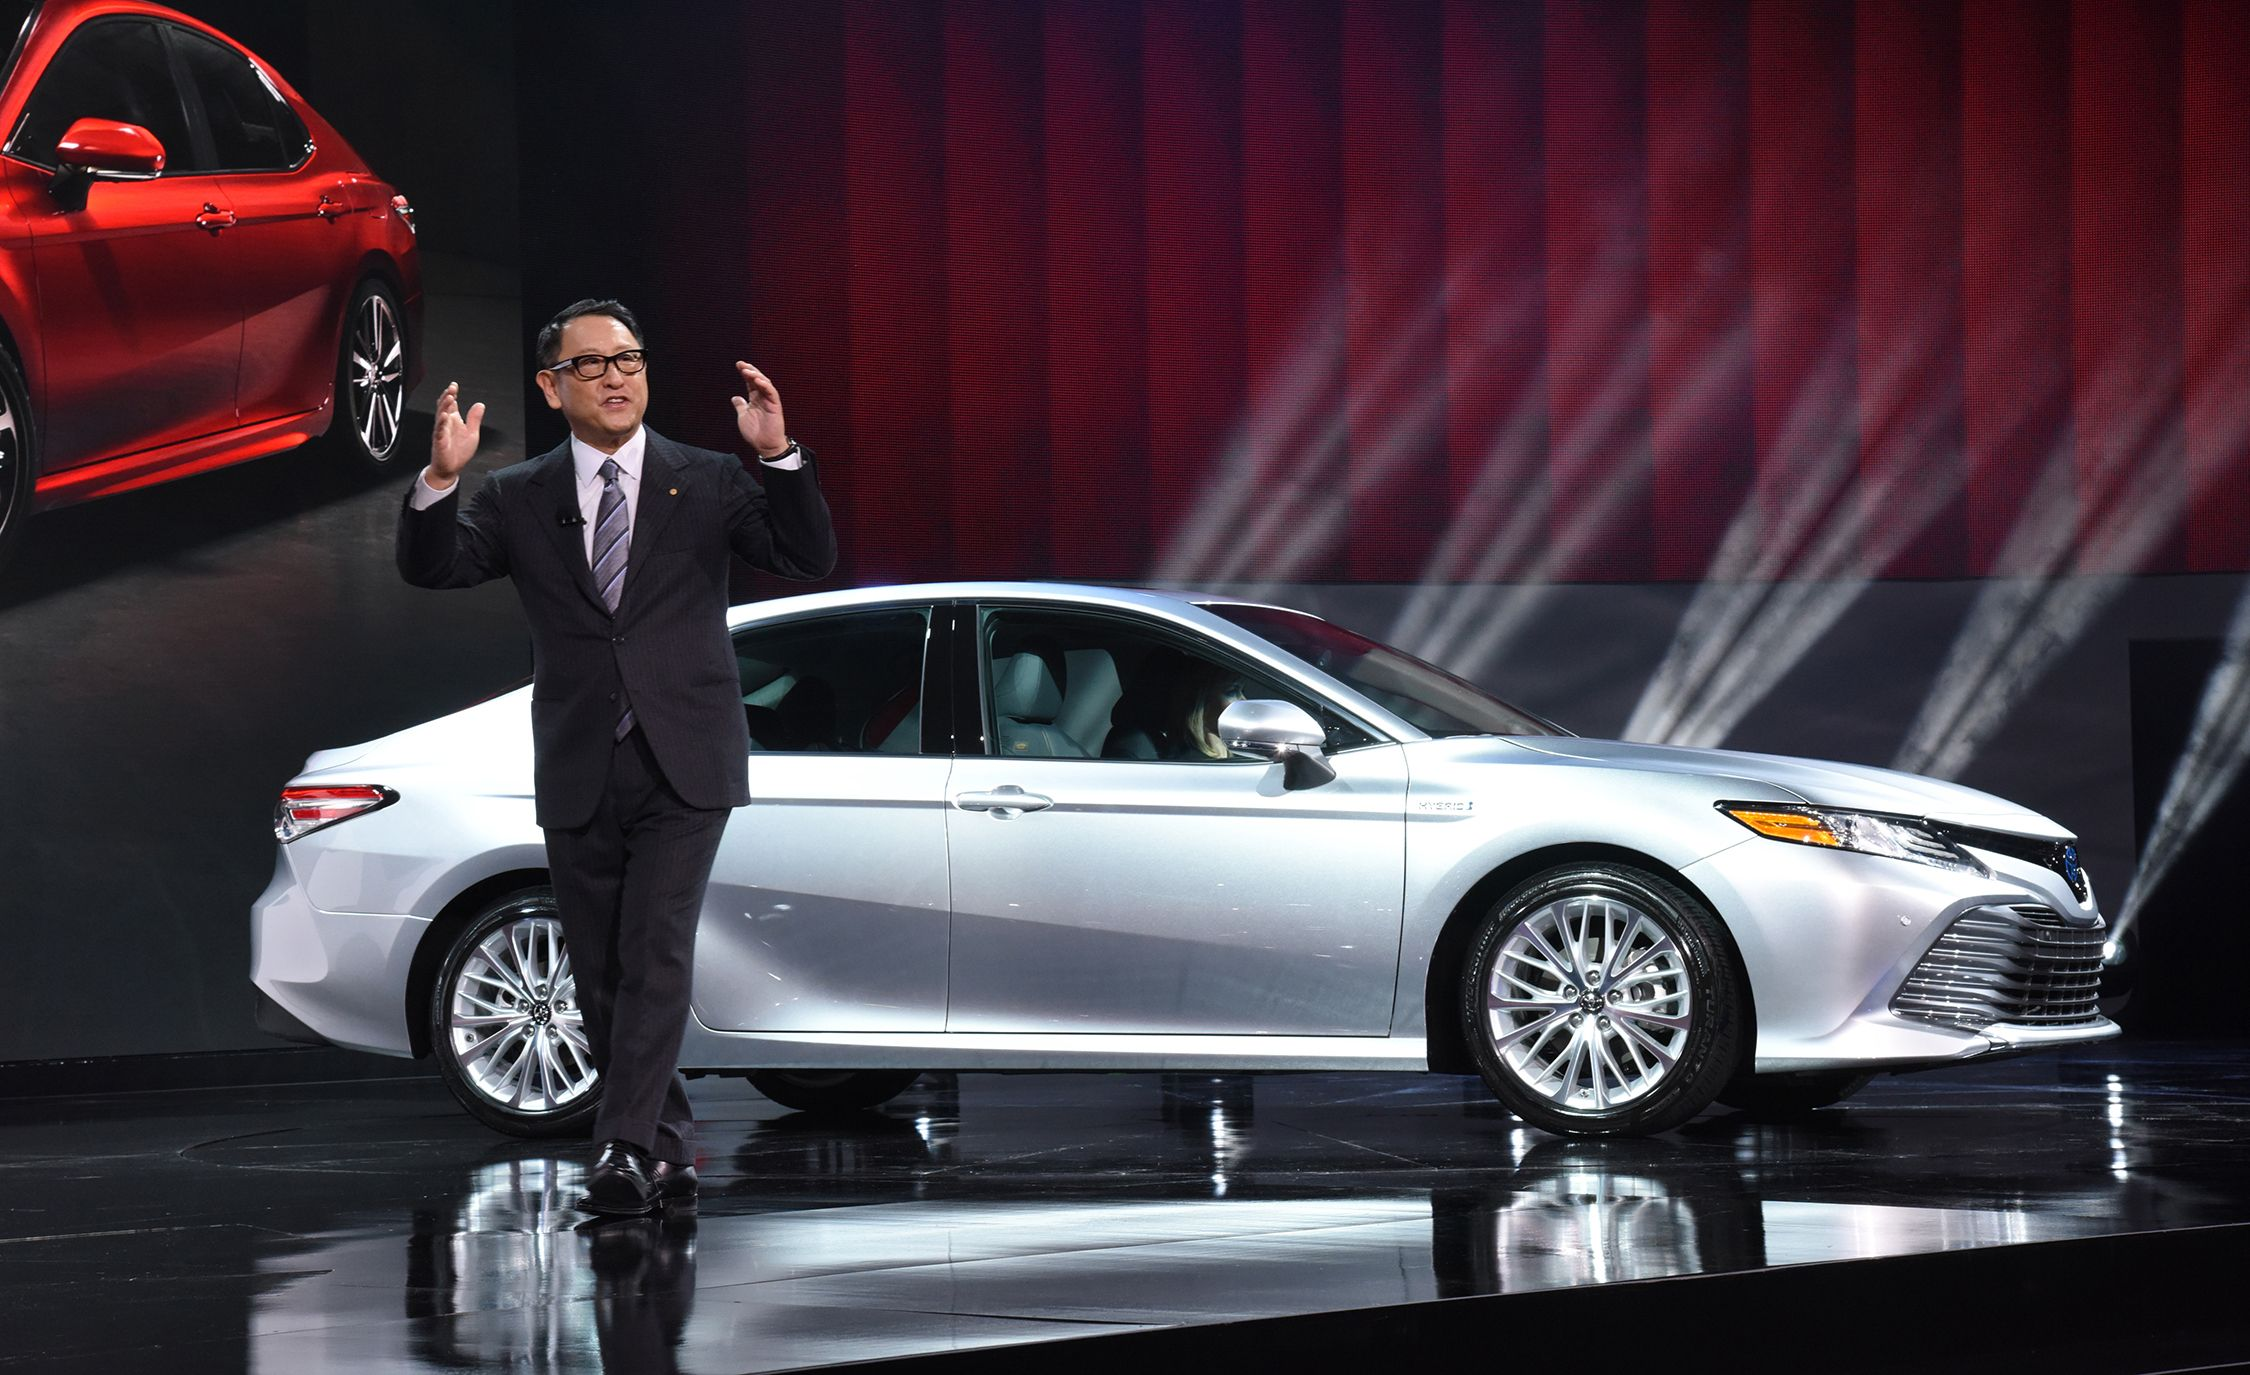 2018 Toyota Camry and Toyota CEO Akio Toyoda